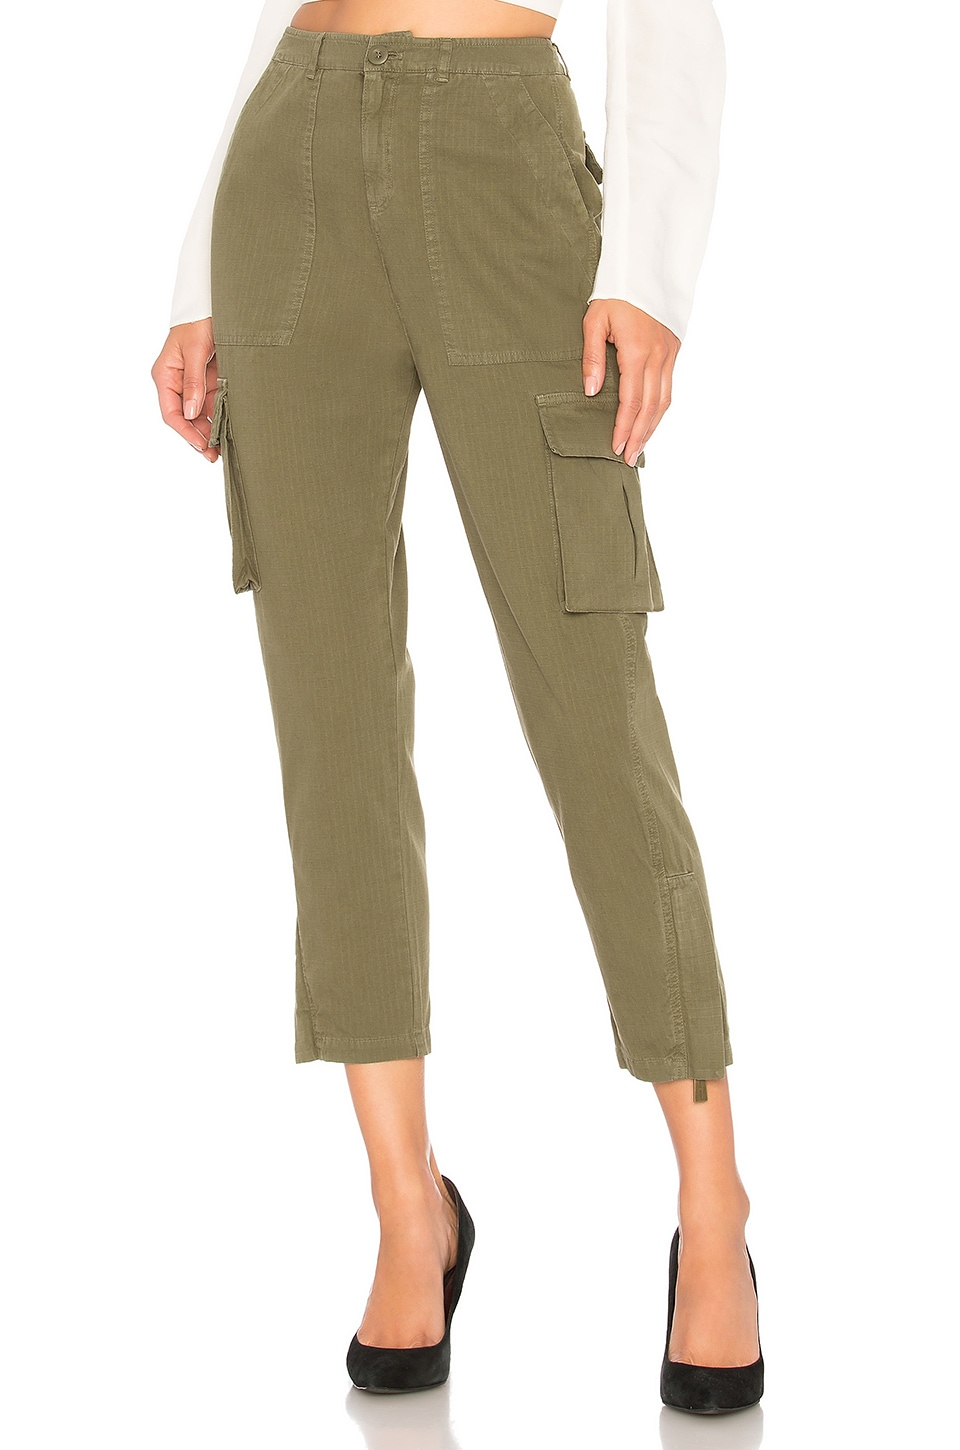 ANINE BING Military Trouser in Military Green